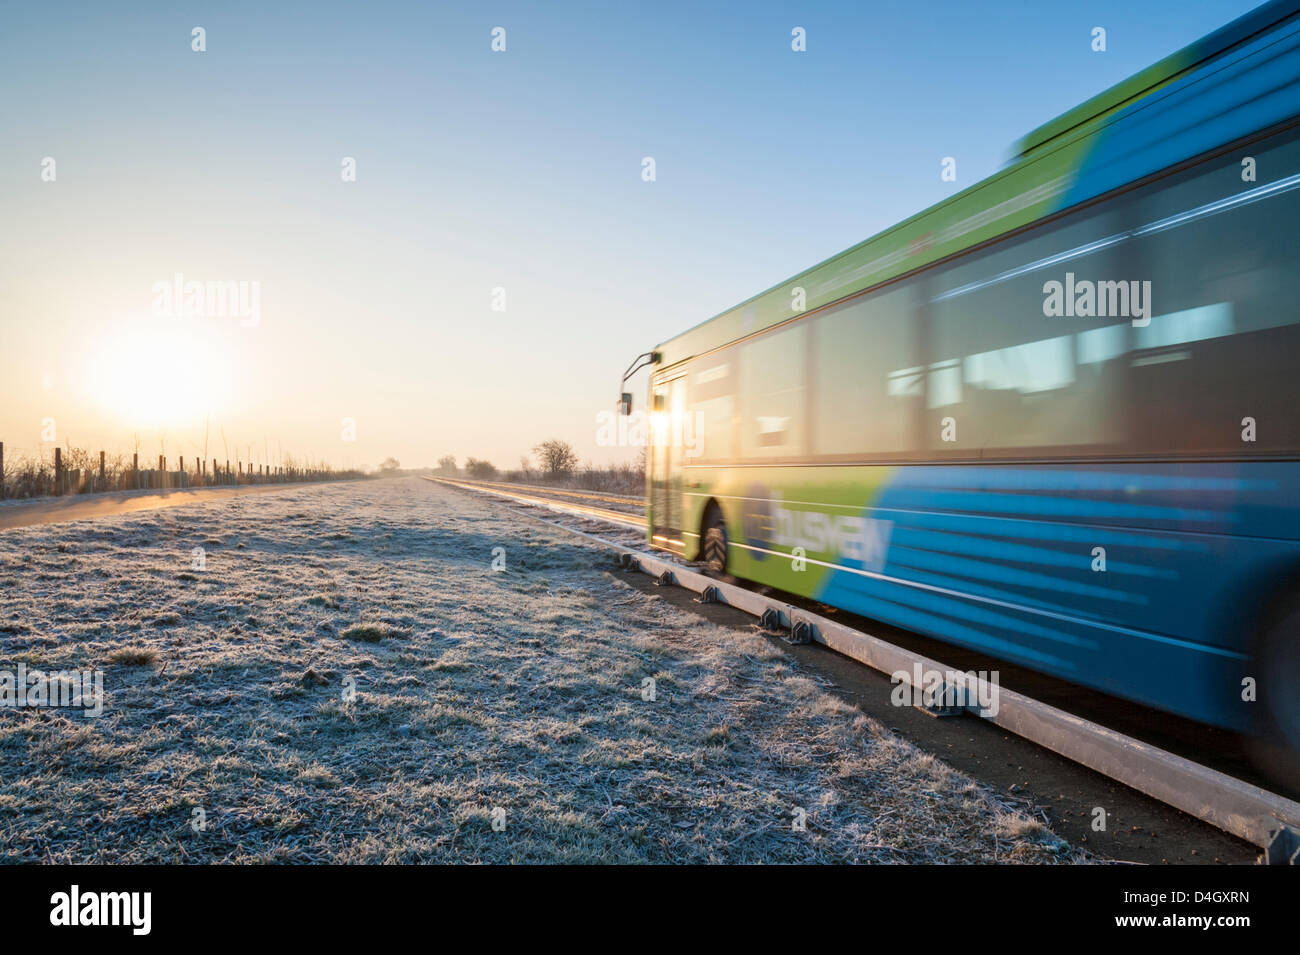 Cambridgeshire, UK. 14th March 2013. A bus carries commuters to Cambridge on the guided busway on a clear frosty - Stock Image